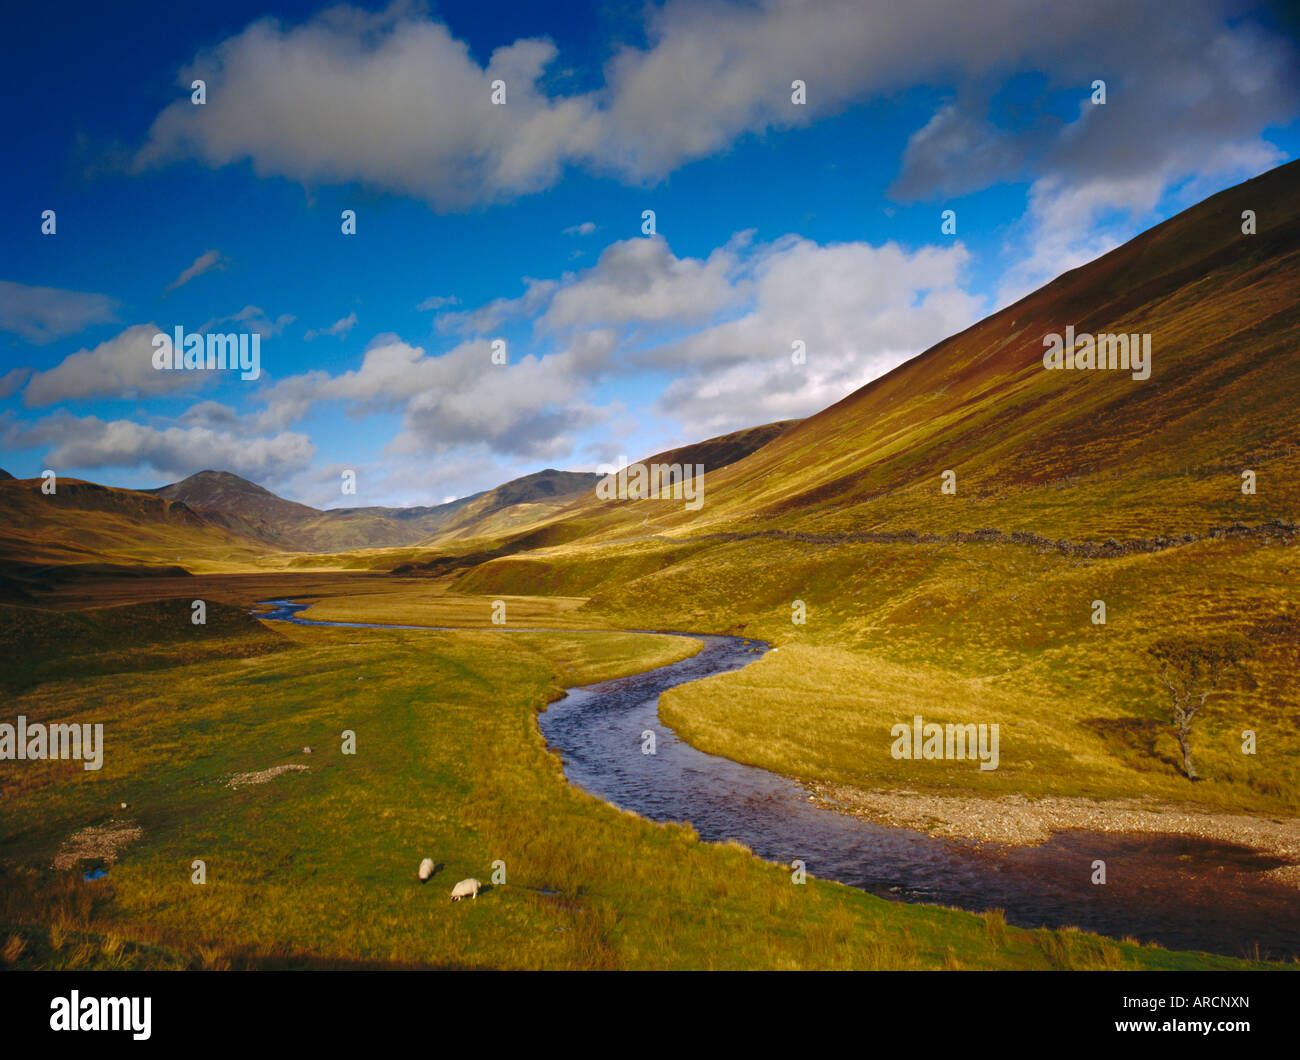 Glen Shee, Tayside, Scotland, UK, Europa Stockbild